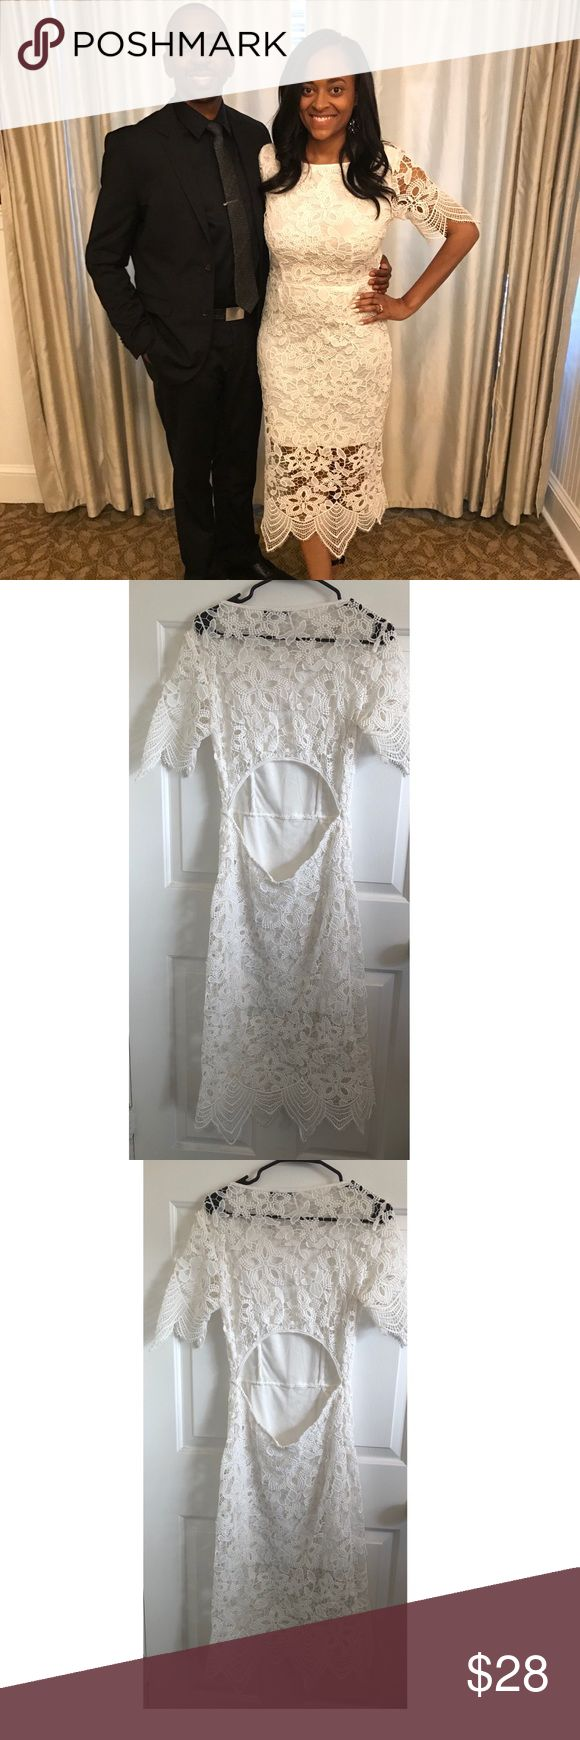 White dress This fabulous white dress is perfect for any pre-wedding activity OR if you just feel like wearing white! Maybe even for a courthouse wedding. Classy and delicate lace all over, with floral pattern and open back. Worn once. Size 8 but fits like a 6. Boohoo Dresses Wedding